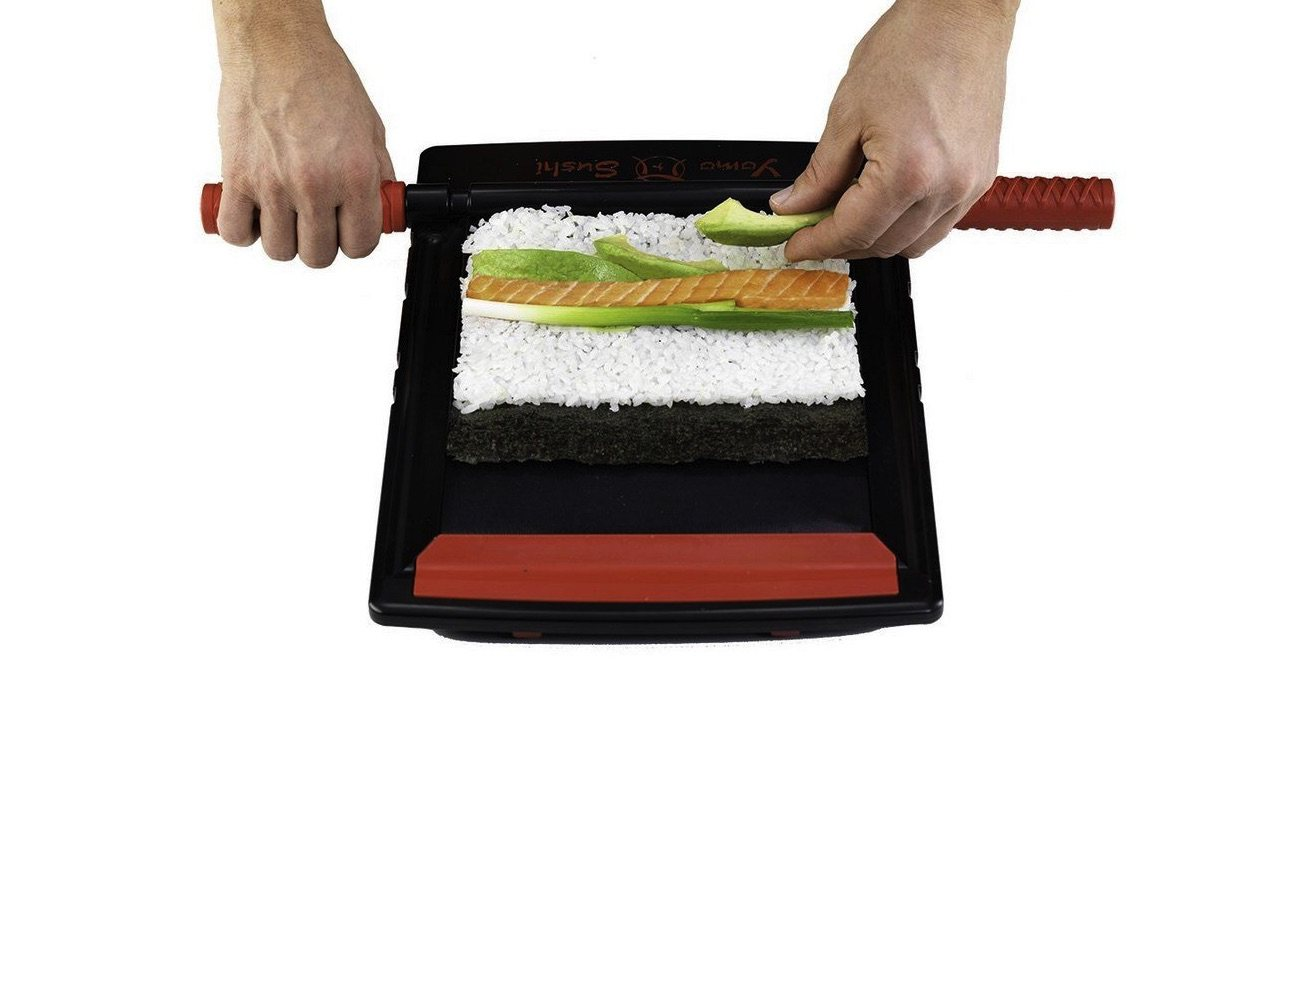 Yomo Sushi Maker – Sushi Rolling System and Roll Cutter